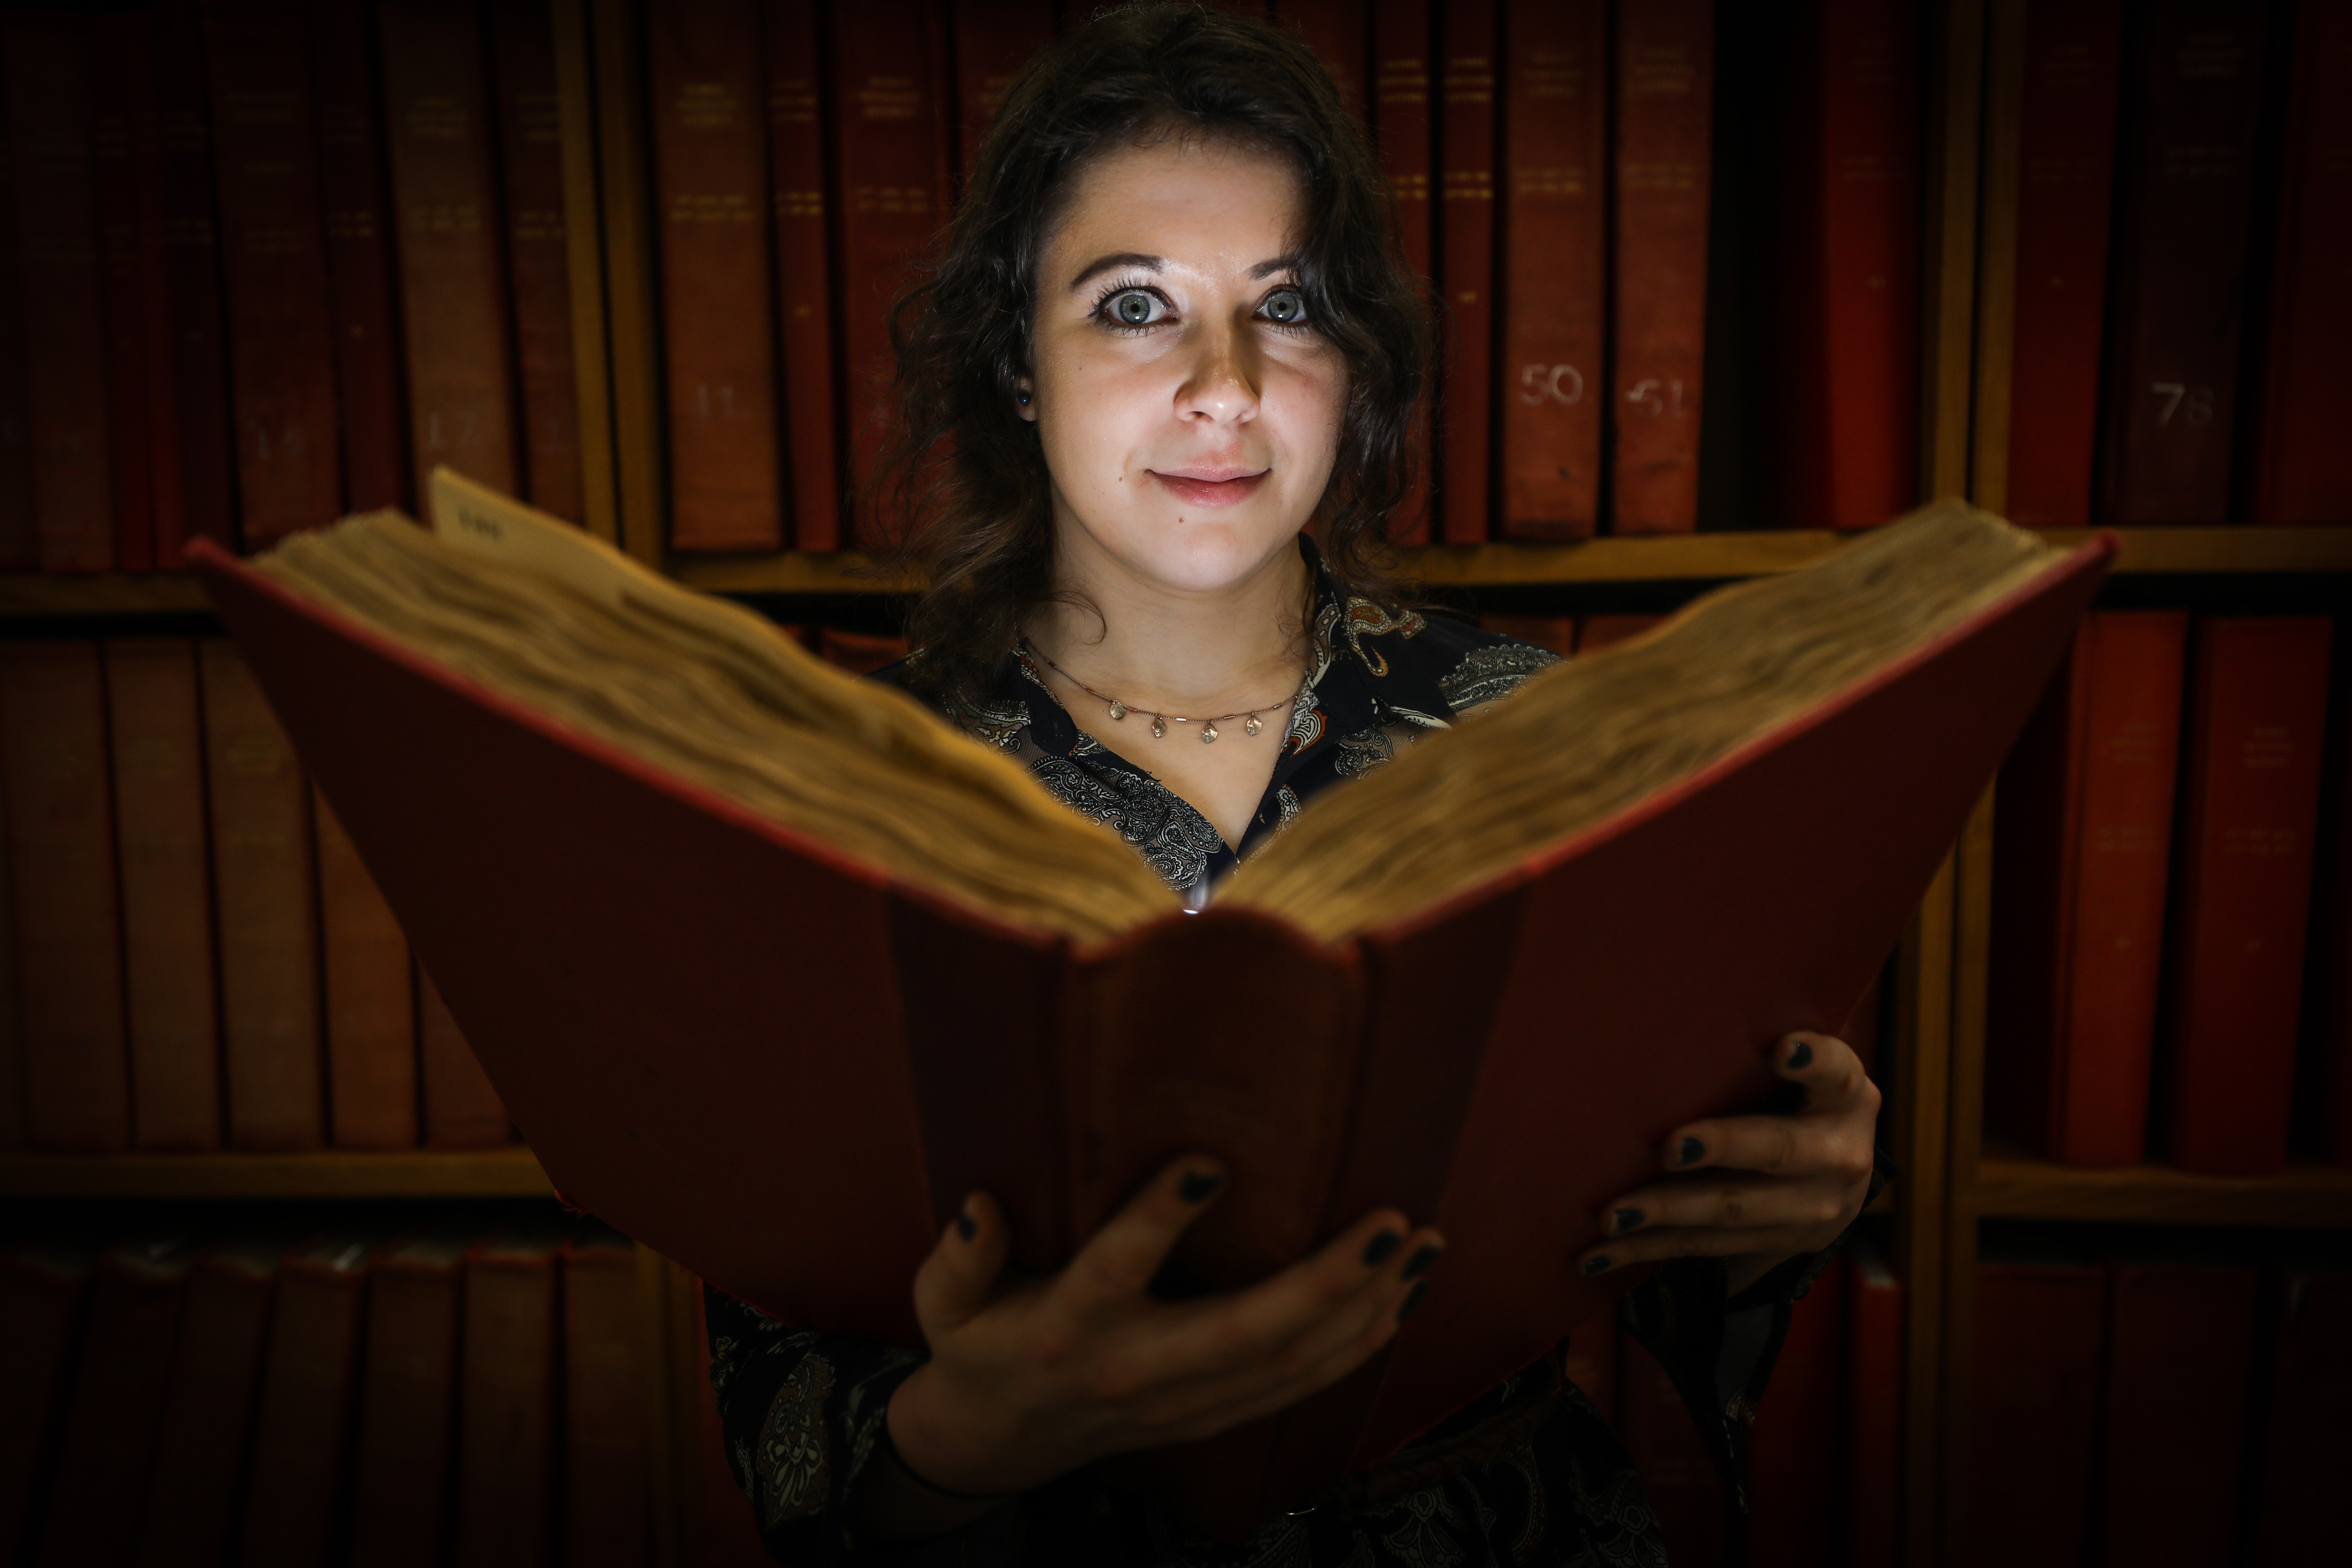 Erin Farley researching her Folklore Collectors lecture at Central Library.